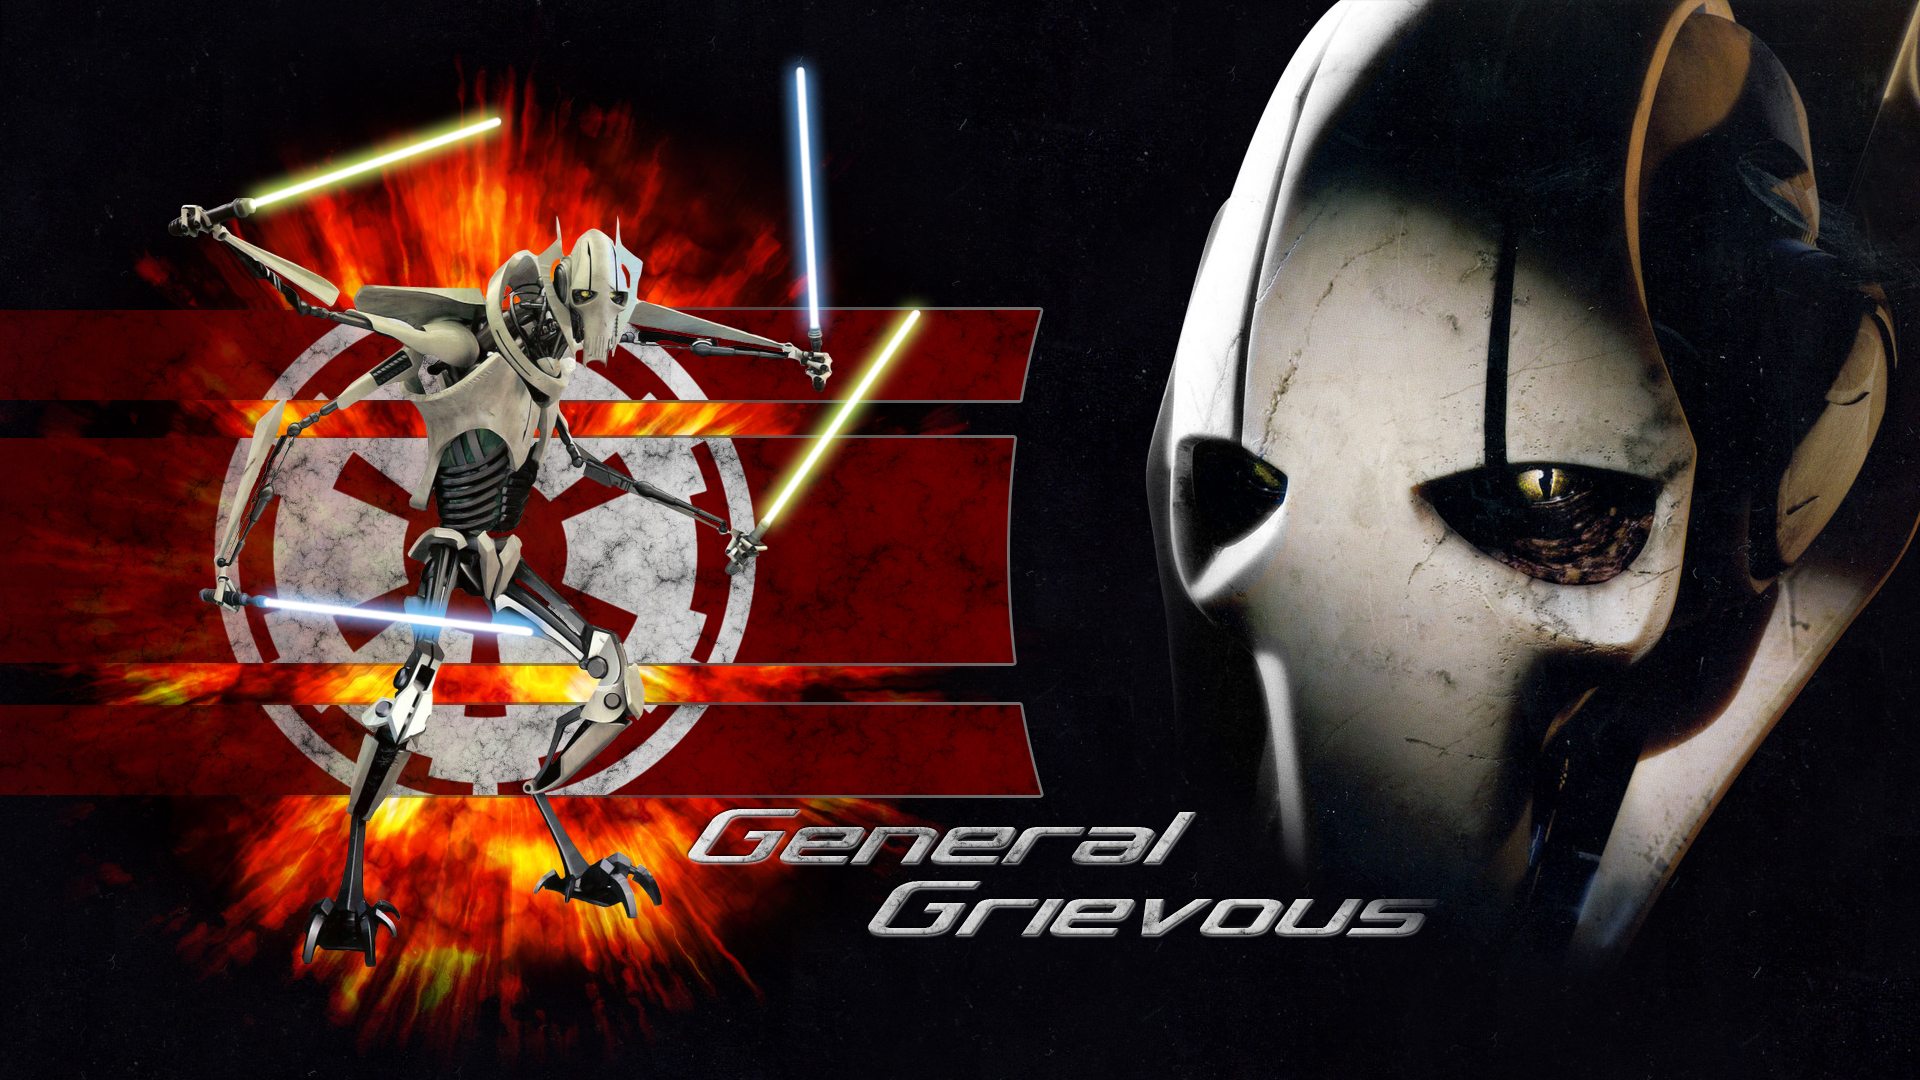 general wallpapers - photo #25